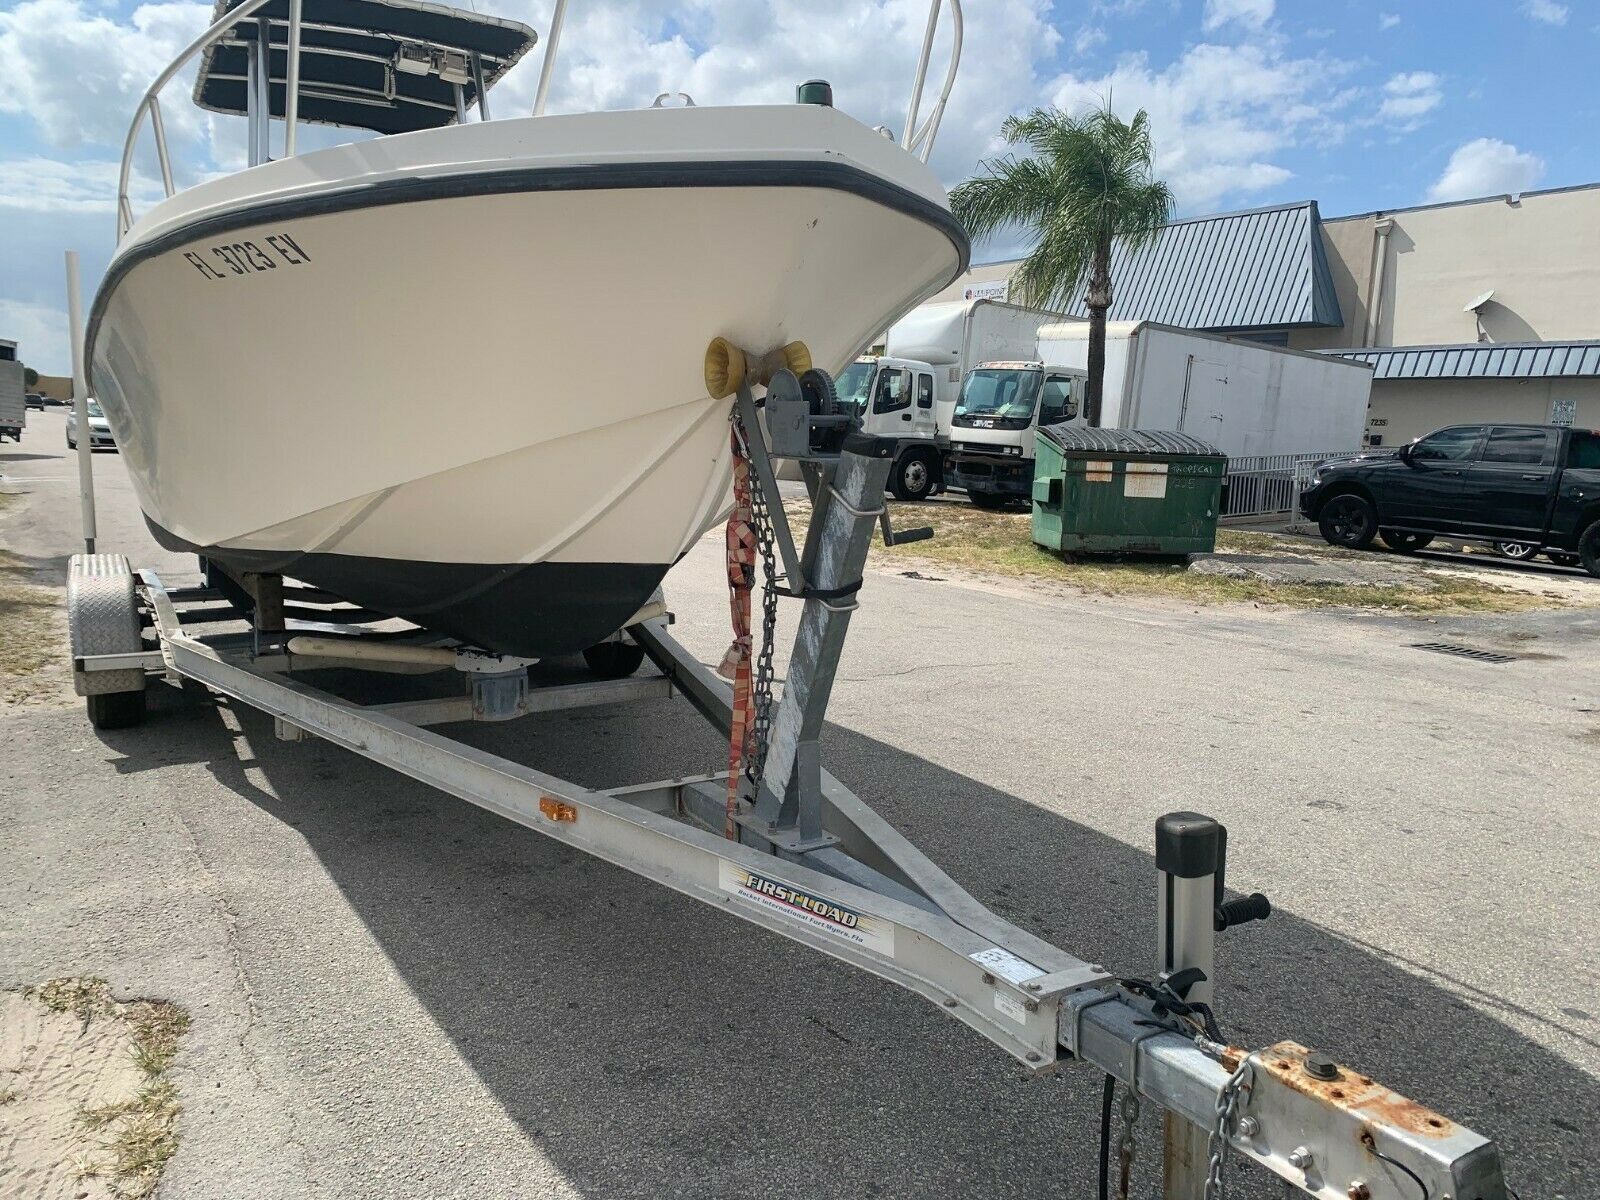 21ft Mako 250HP EFI Mercury with Dual Axle Aluminum Trailer boat